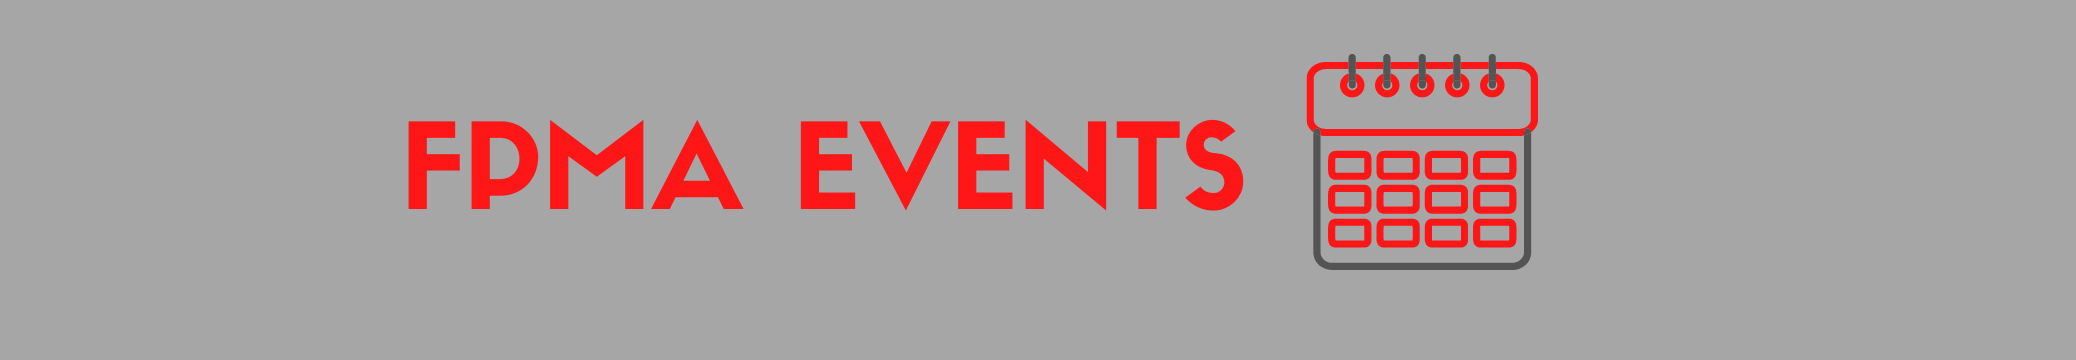 FPMA-Events-Banner.png